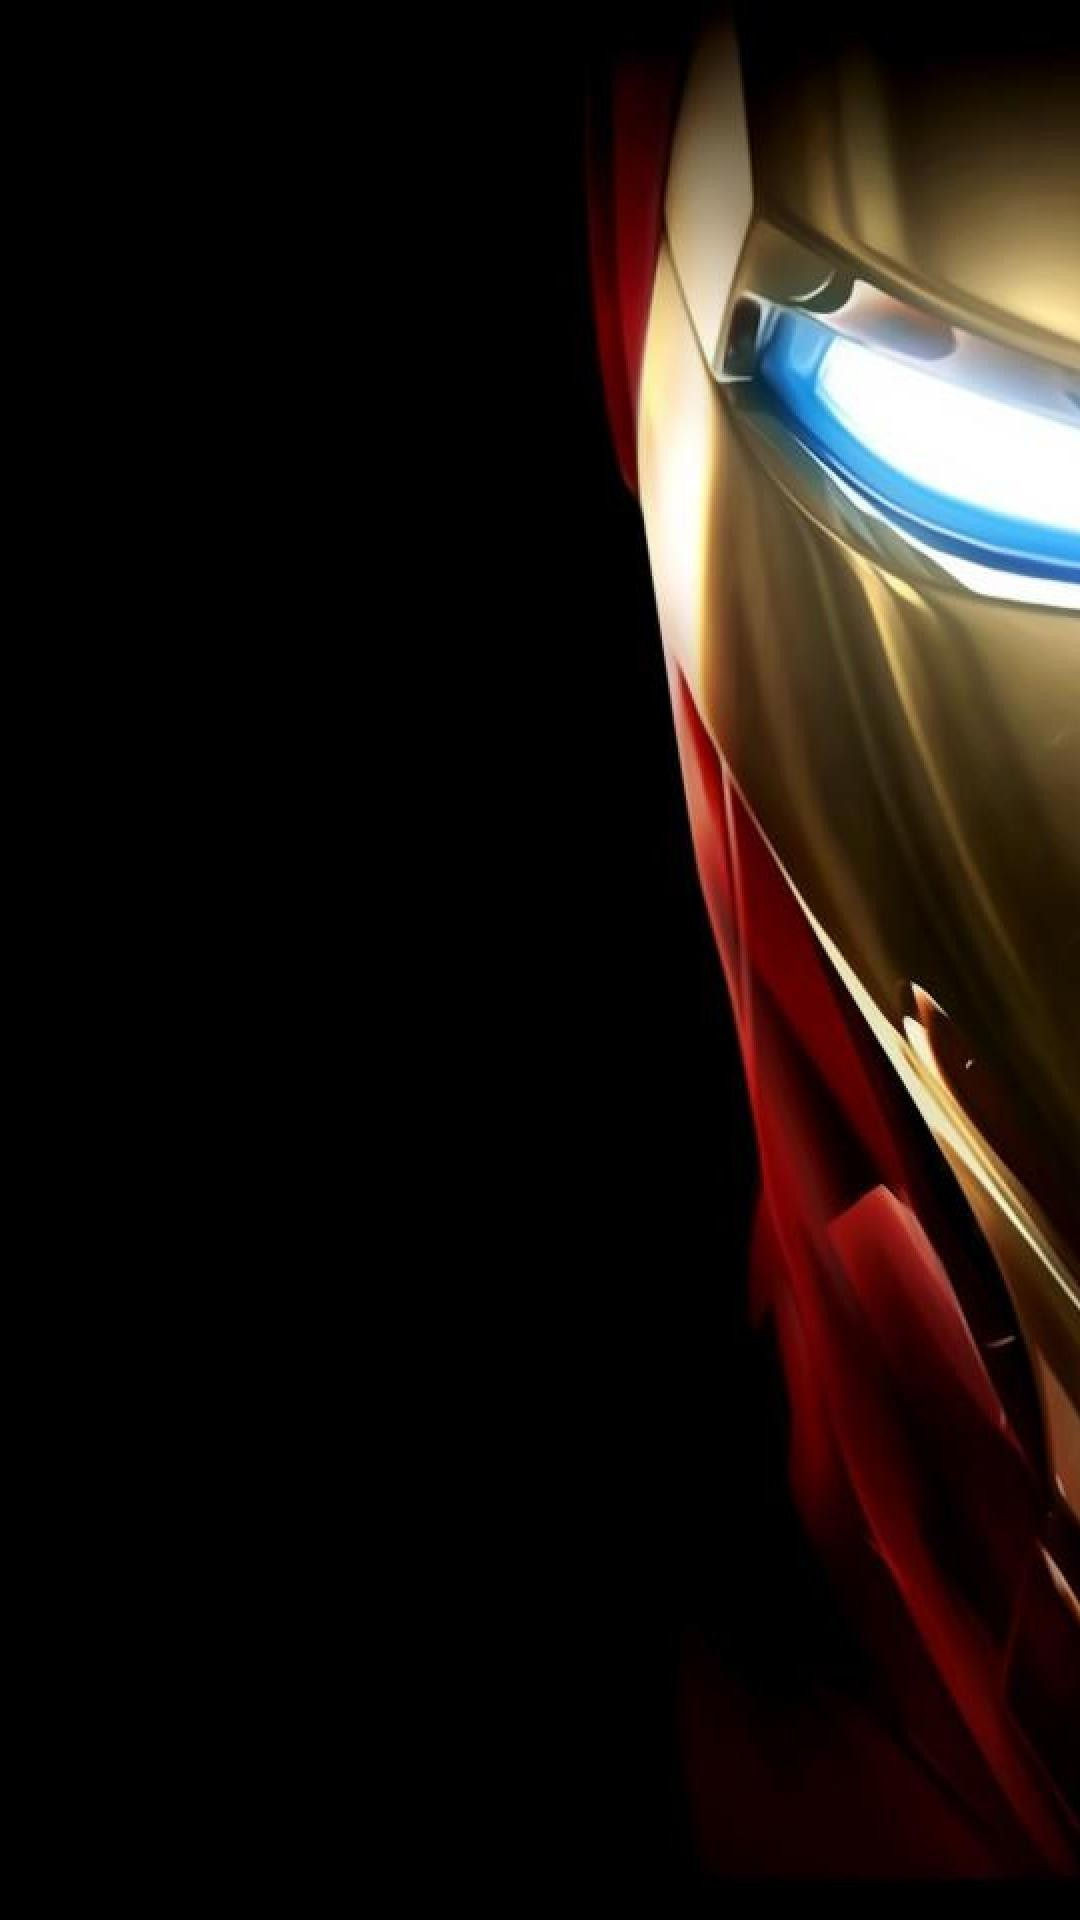 Ironman HD Wallpapers for iPhone 6 Plus | Wallpapers.Pictures